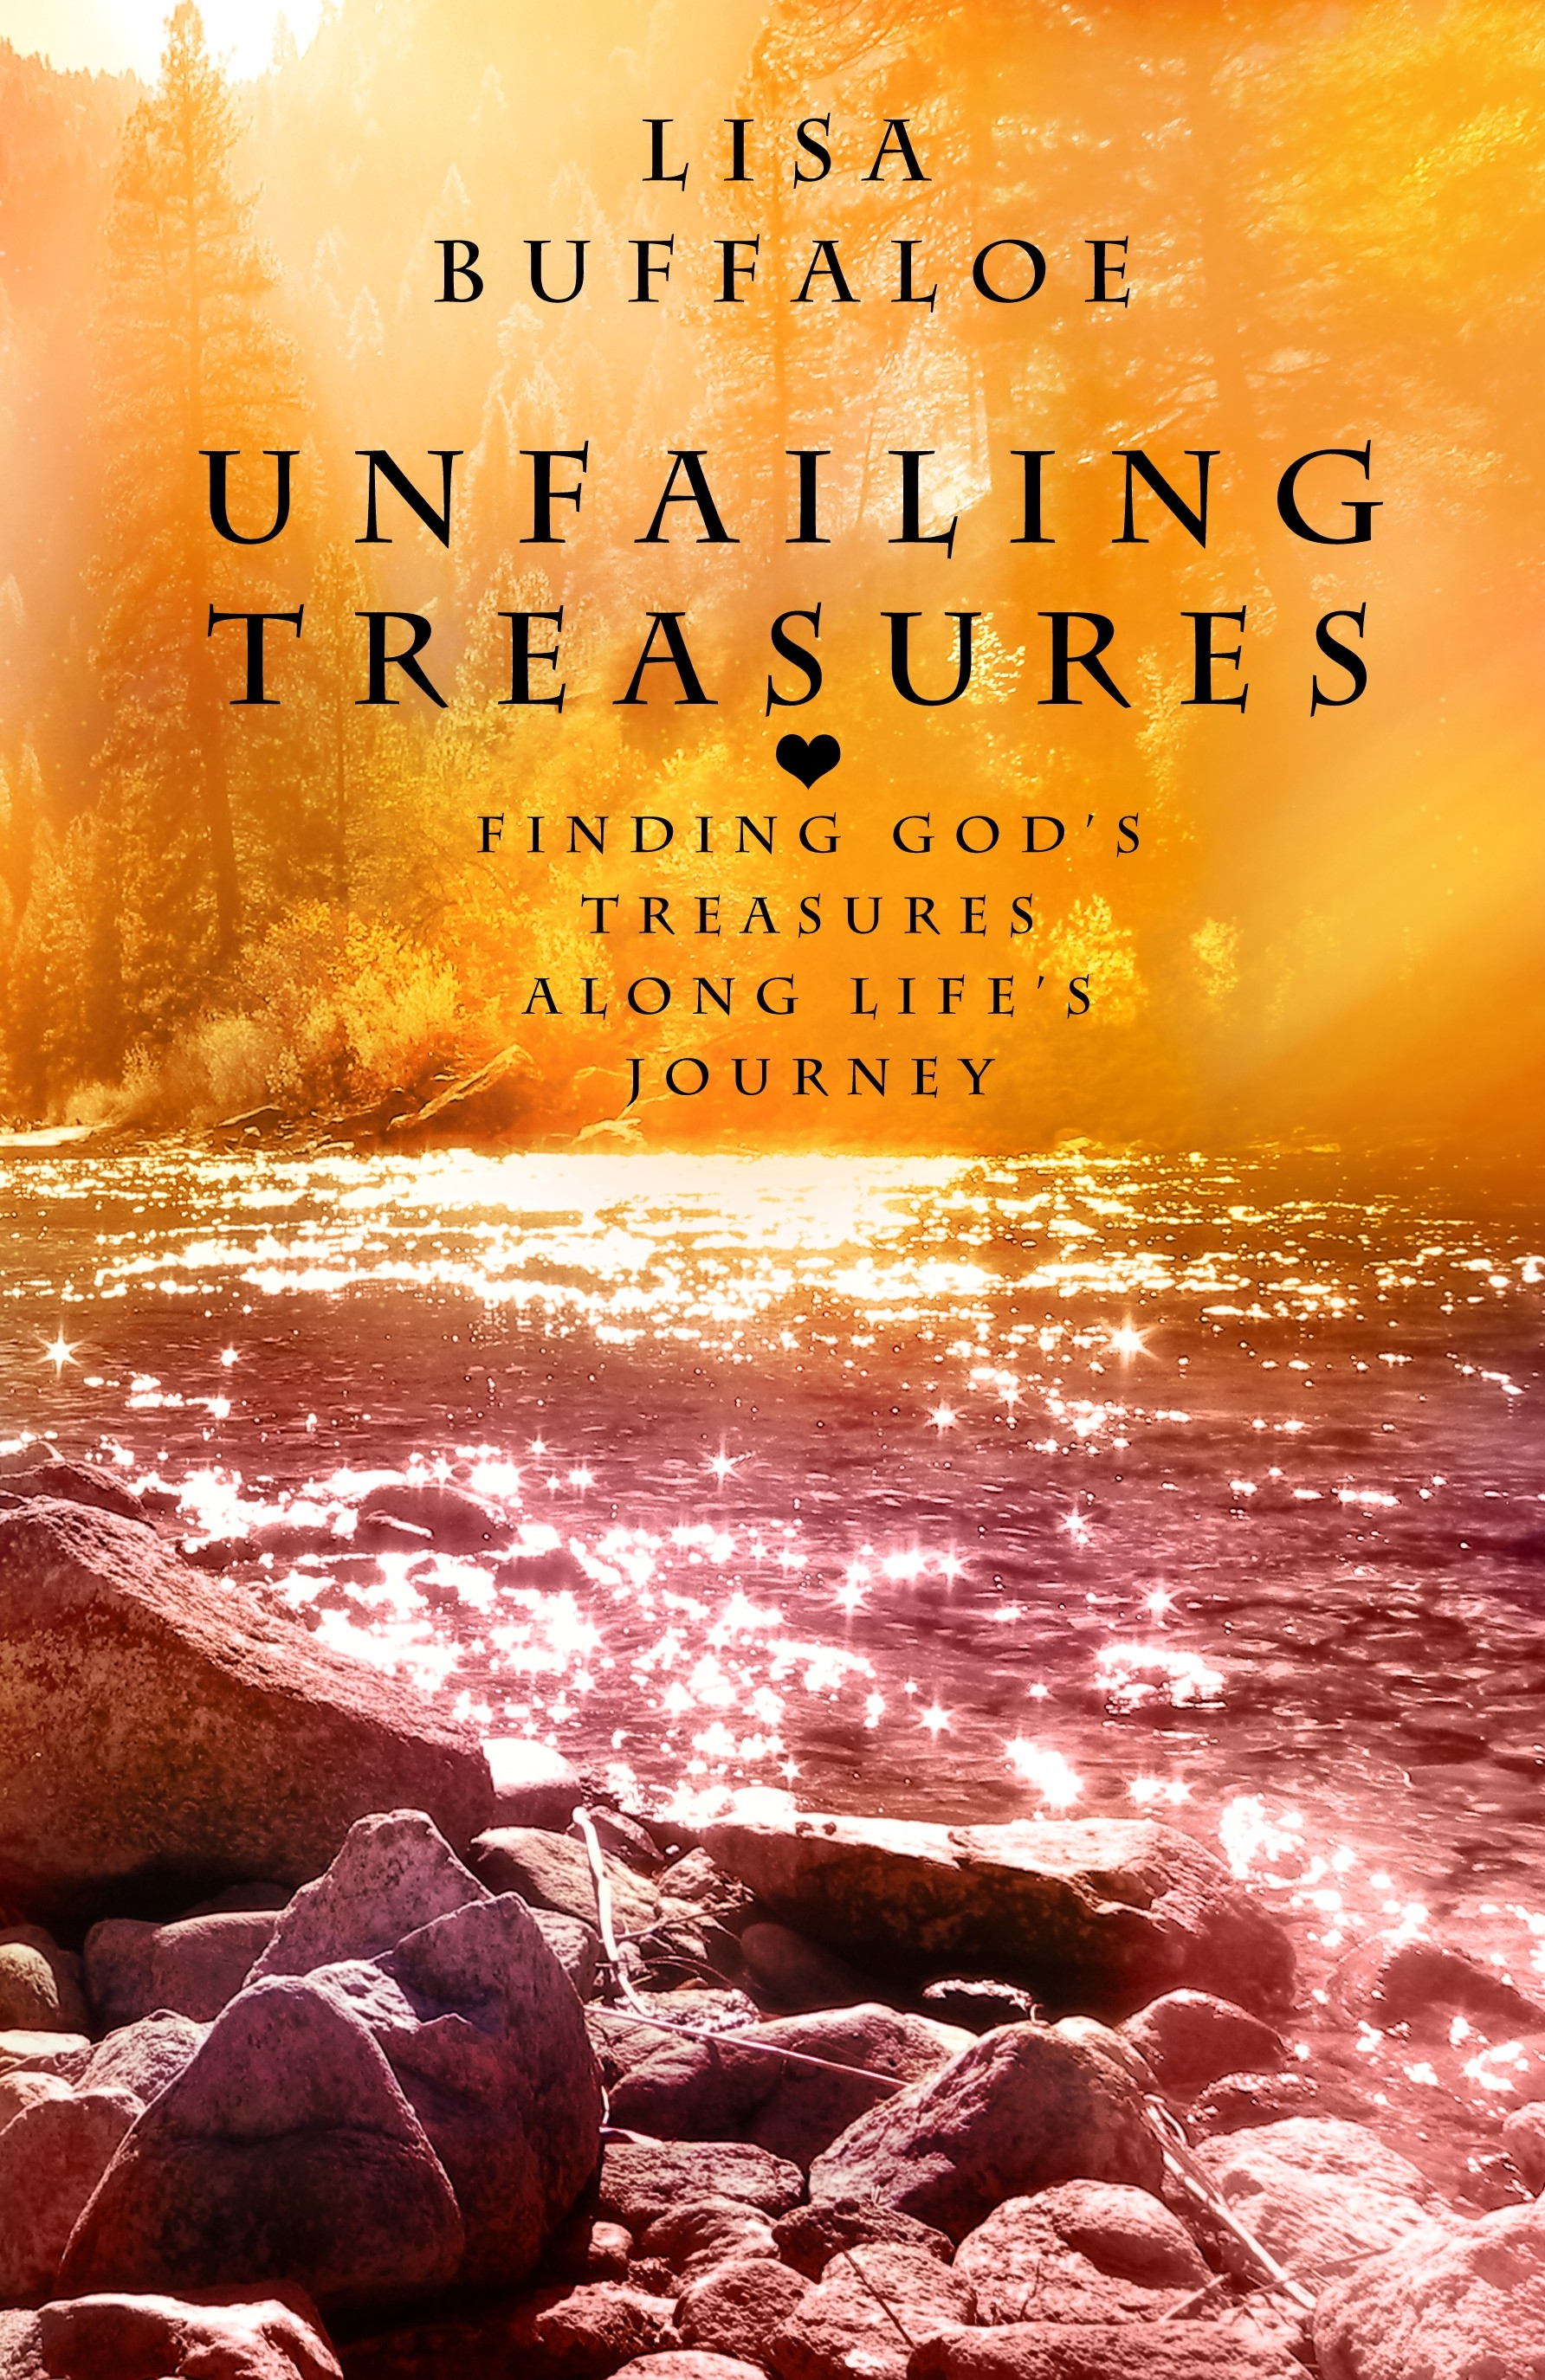 Unfailing Treasures by Lisa Buffaloe